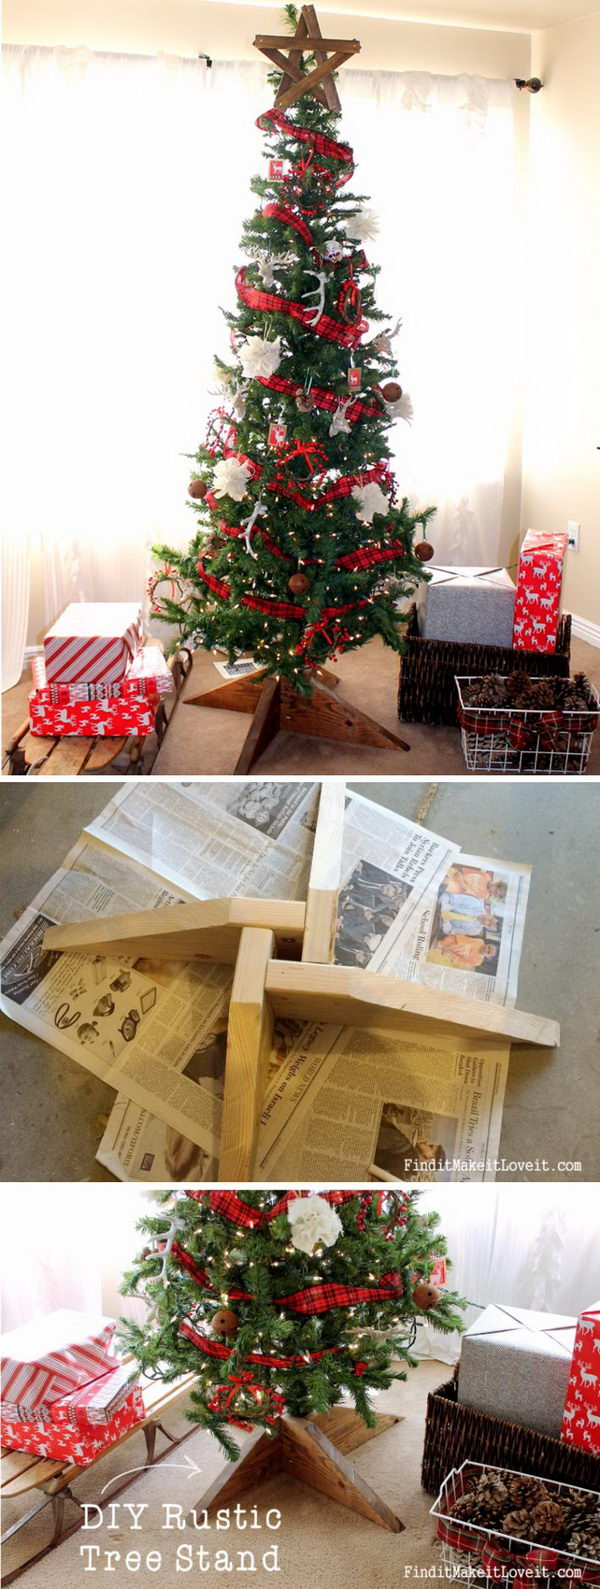 diy rustic wood tree stand - Cheap Christmas Tree Stands